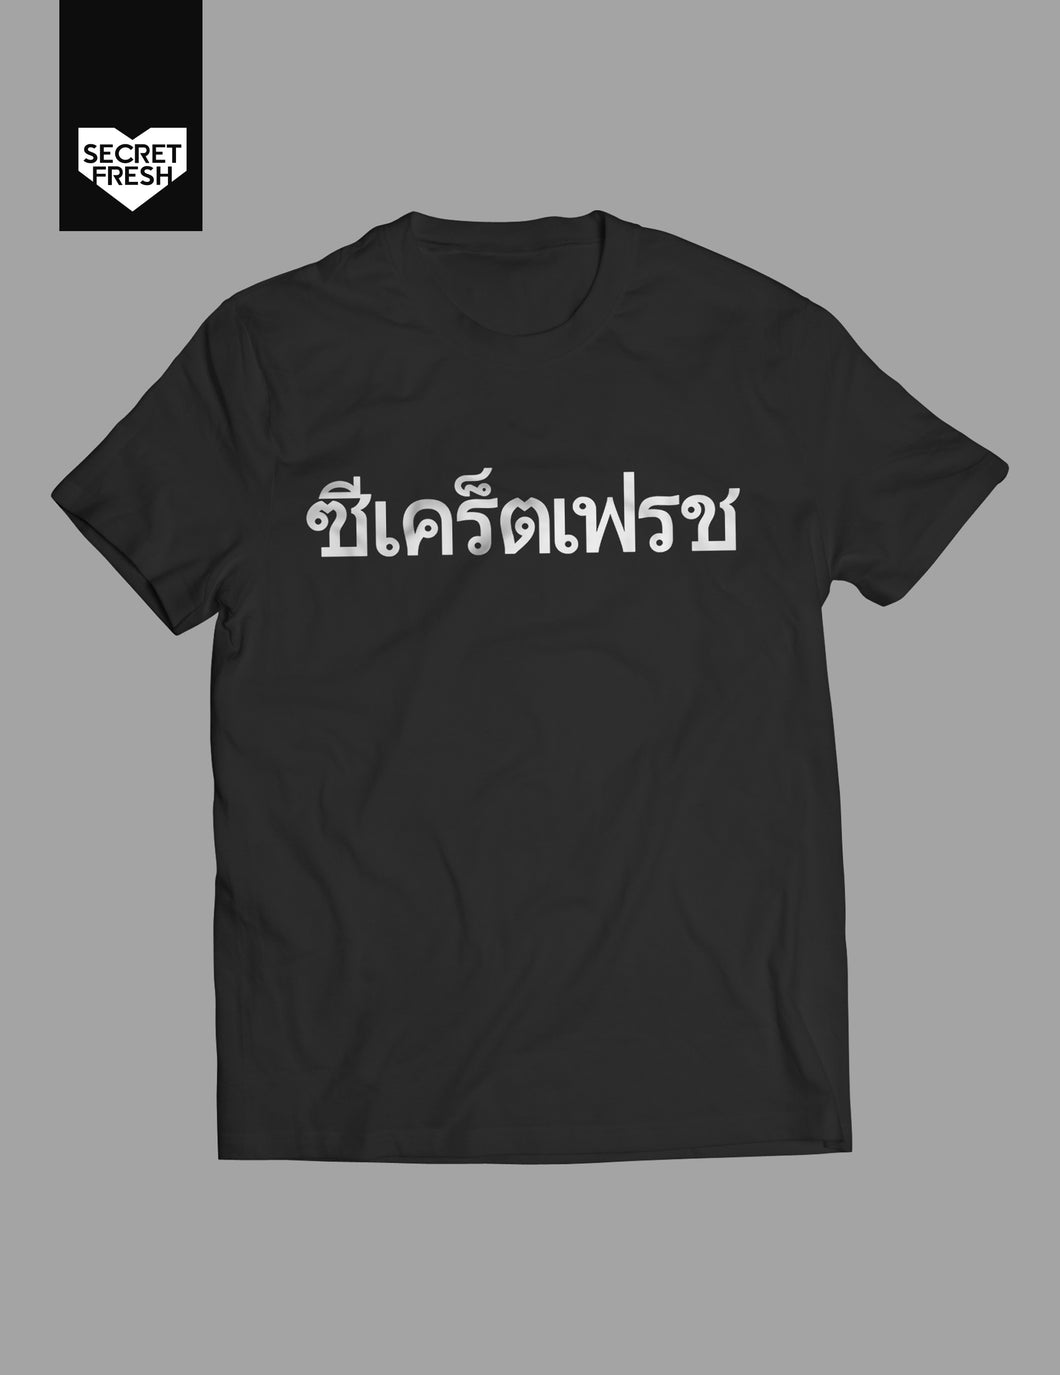 THAI LOGO SHIRT